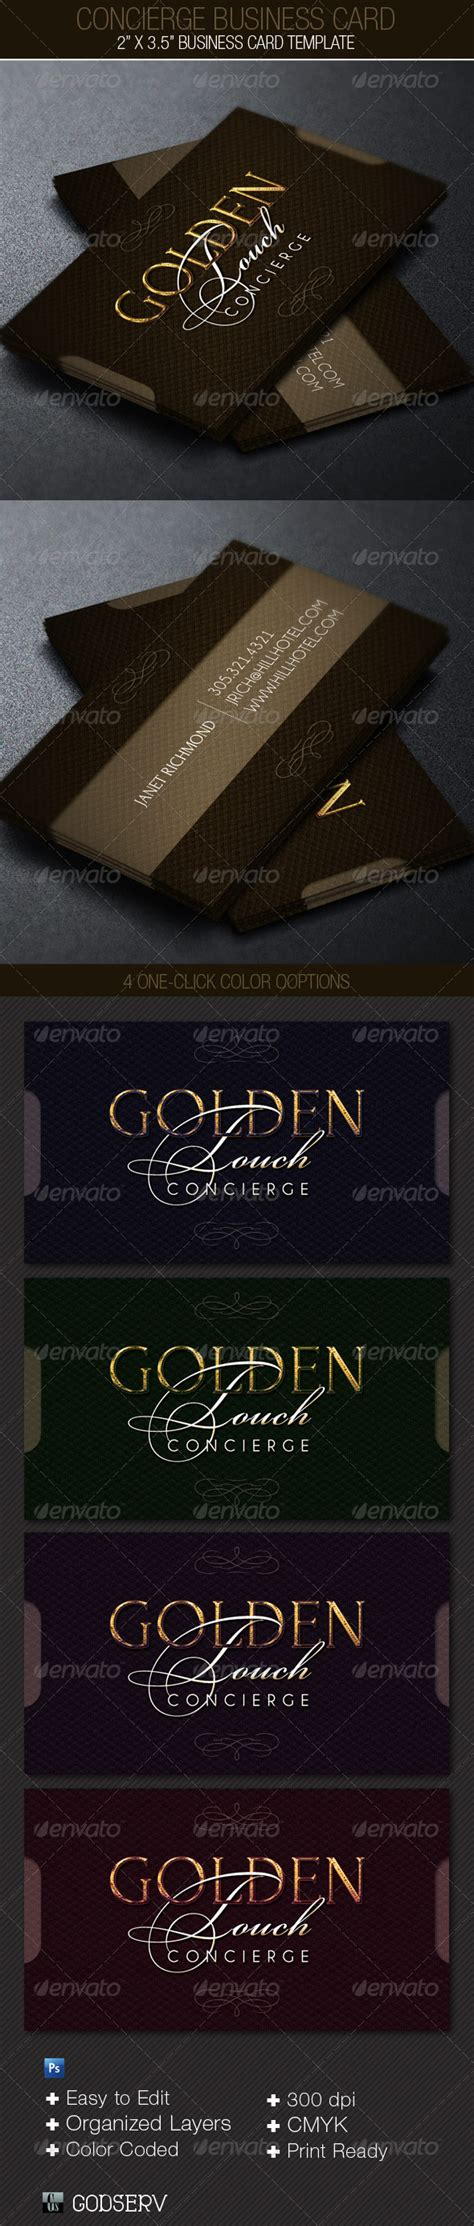 concierge business cards template concierge business card template by godserv on deviantart